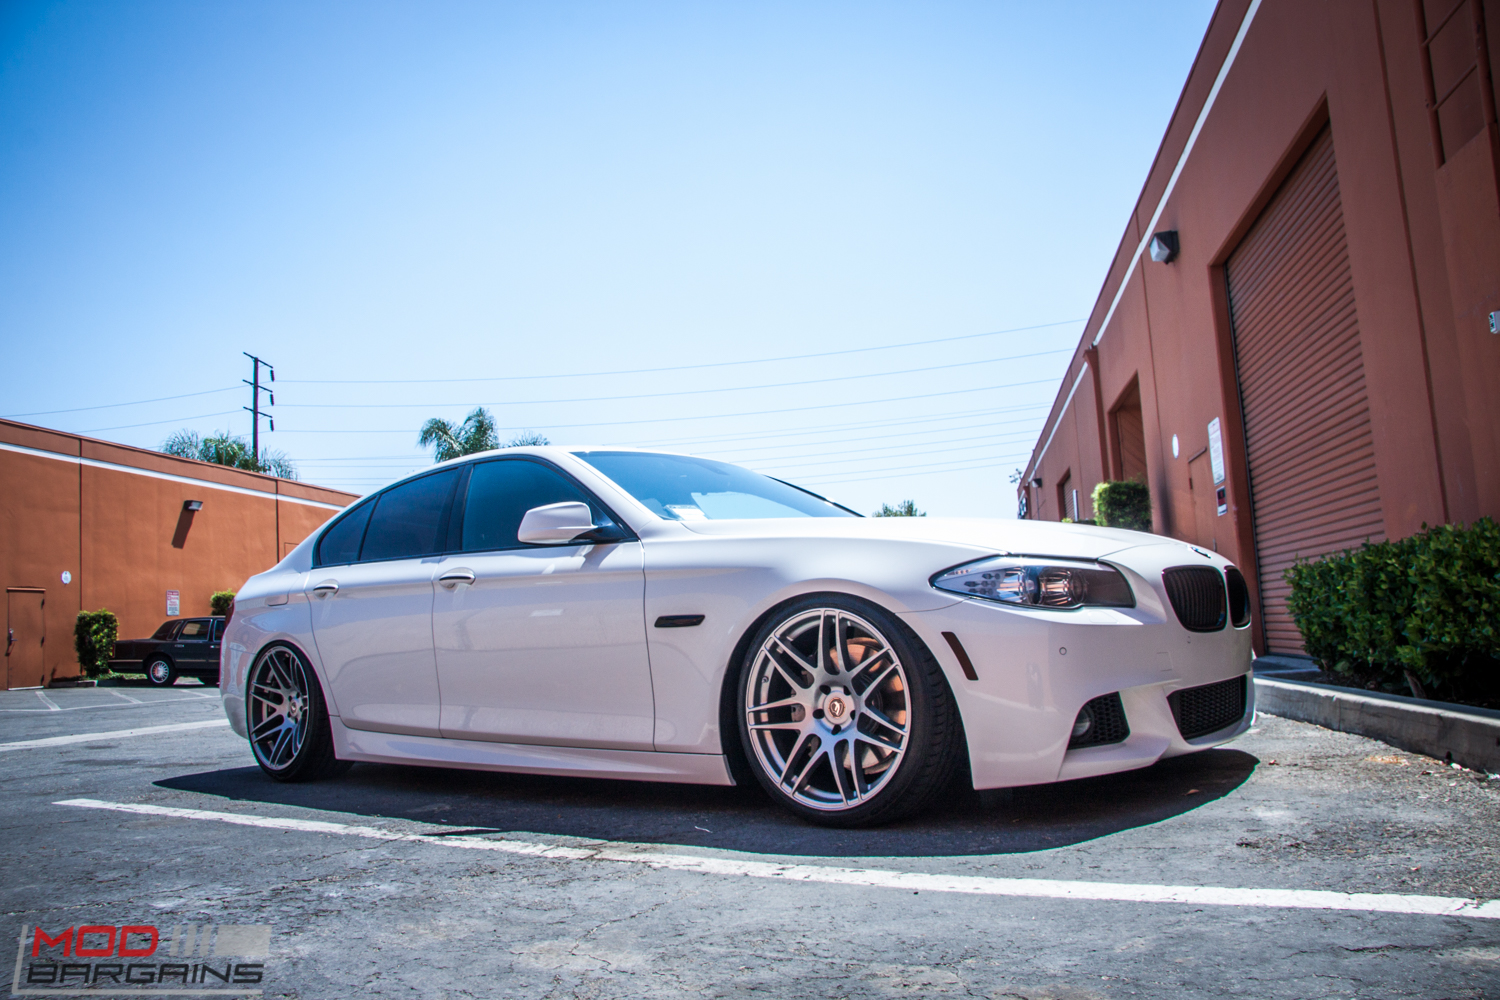 Bmw 535I Xdrive >> Airrex Bagged F10 BMW 535i on Forgestar F14s Stuns